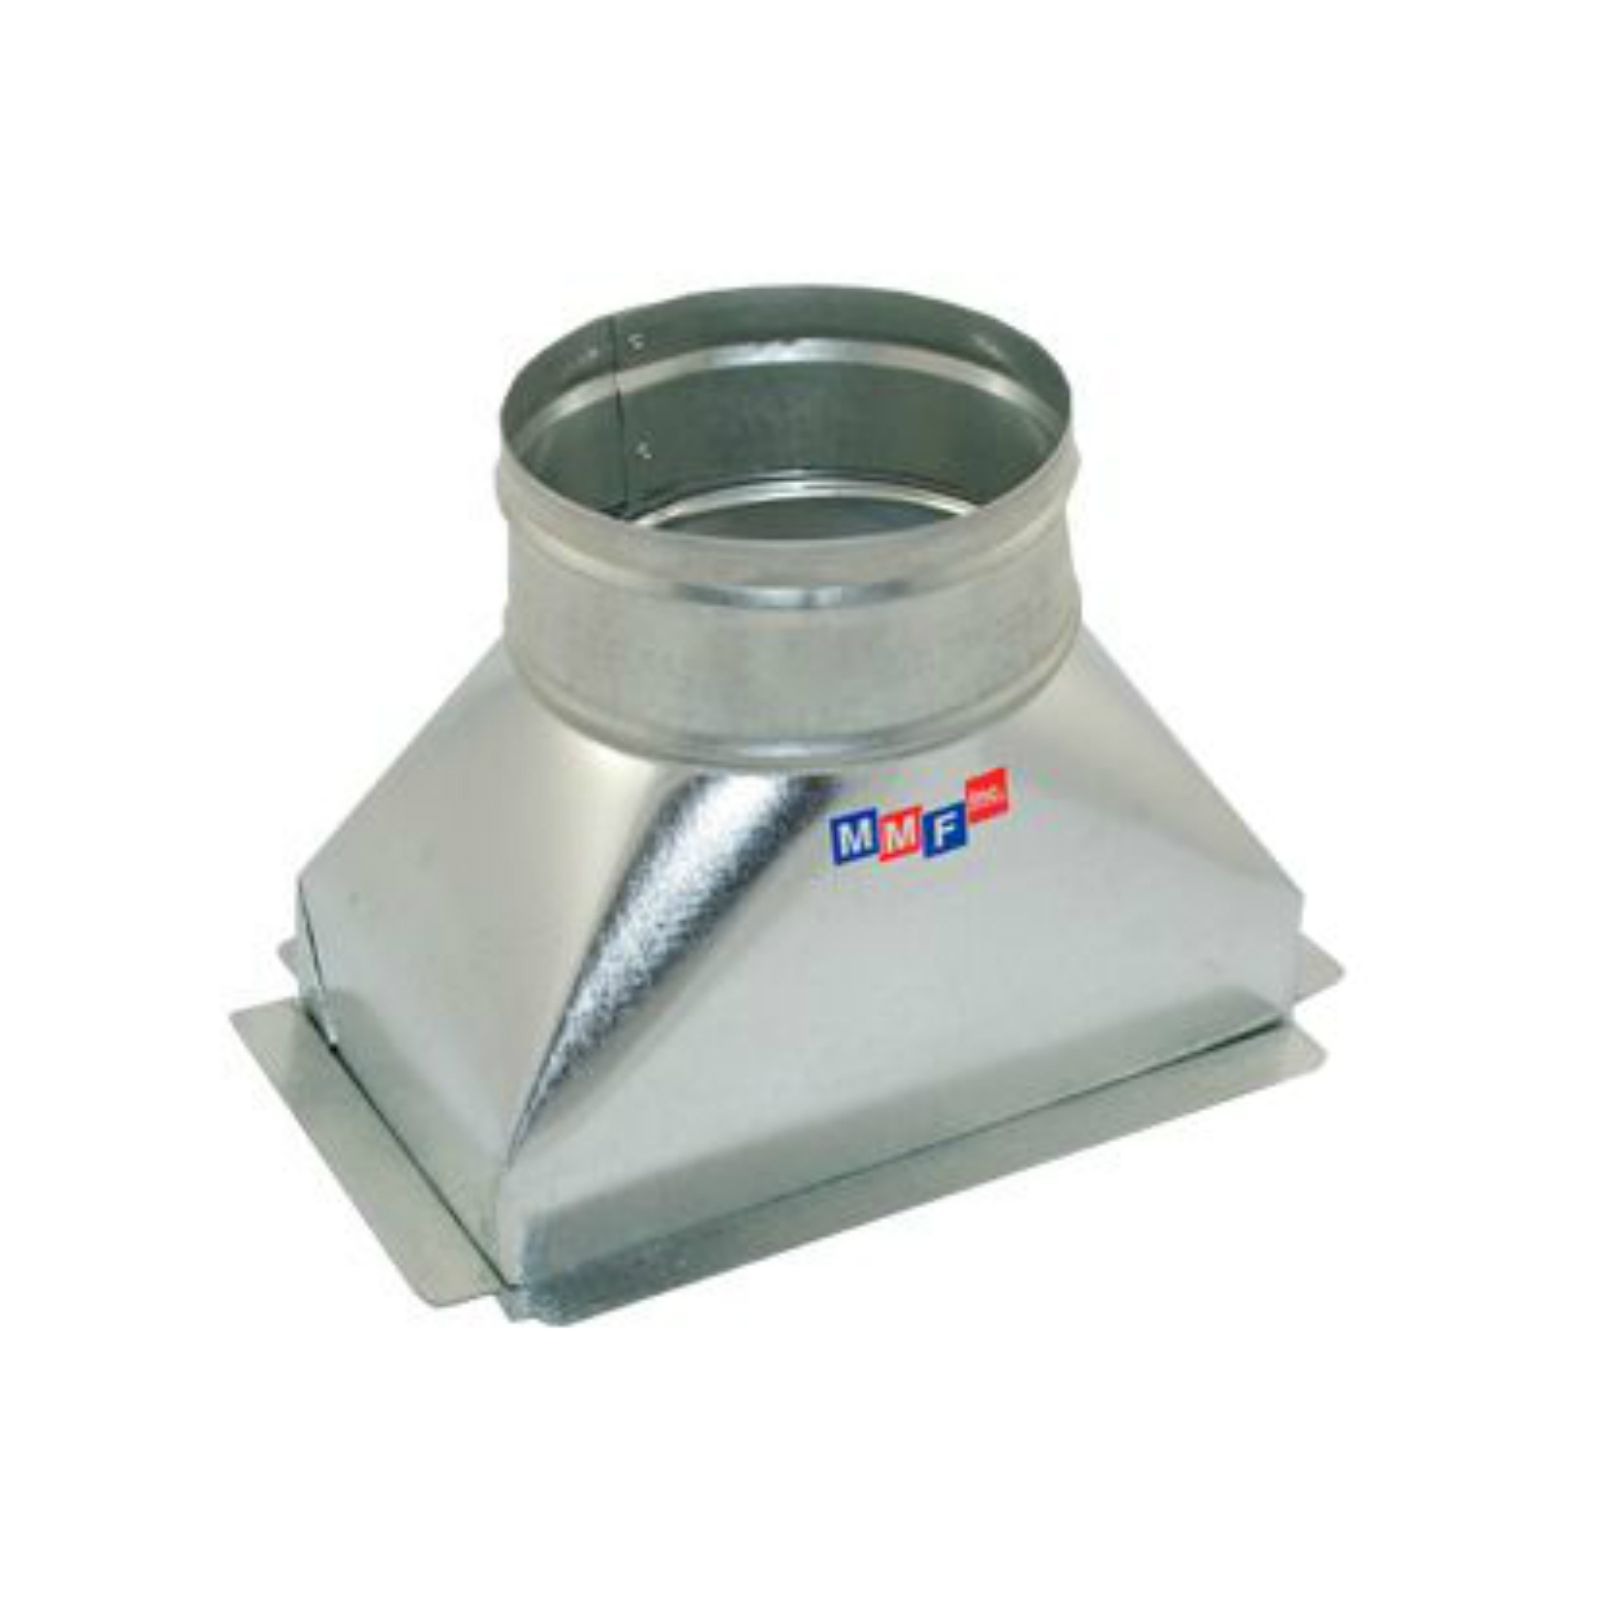 "Modular Metal BTSFG080404P - Sealed Floor Box - 30 Gauge - With Plaster Ground Flange 08"" X 04"" To 04"" Round"